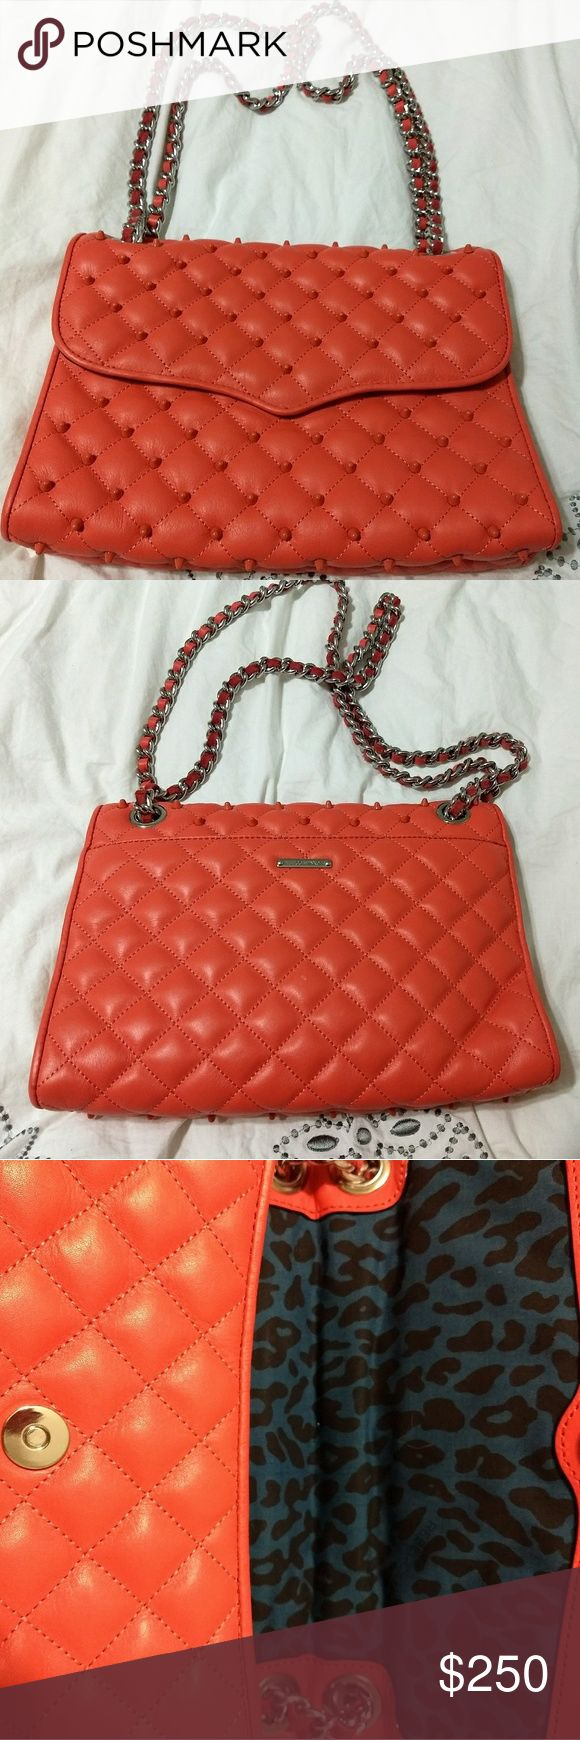 Rebecca Minkoff Affair Quilted Studded Bag Brand new, never used. Beautiful salmon soft leather envelope bag with matching studs. Chain and leather strap is long enough to be carried as a crossbody or on shoulder. Rebecca Minkoff Bags Shoulder Bags